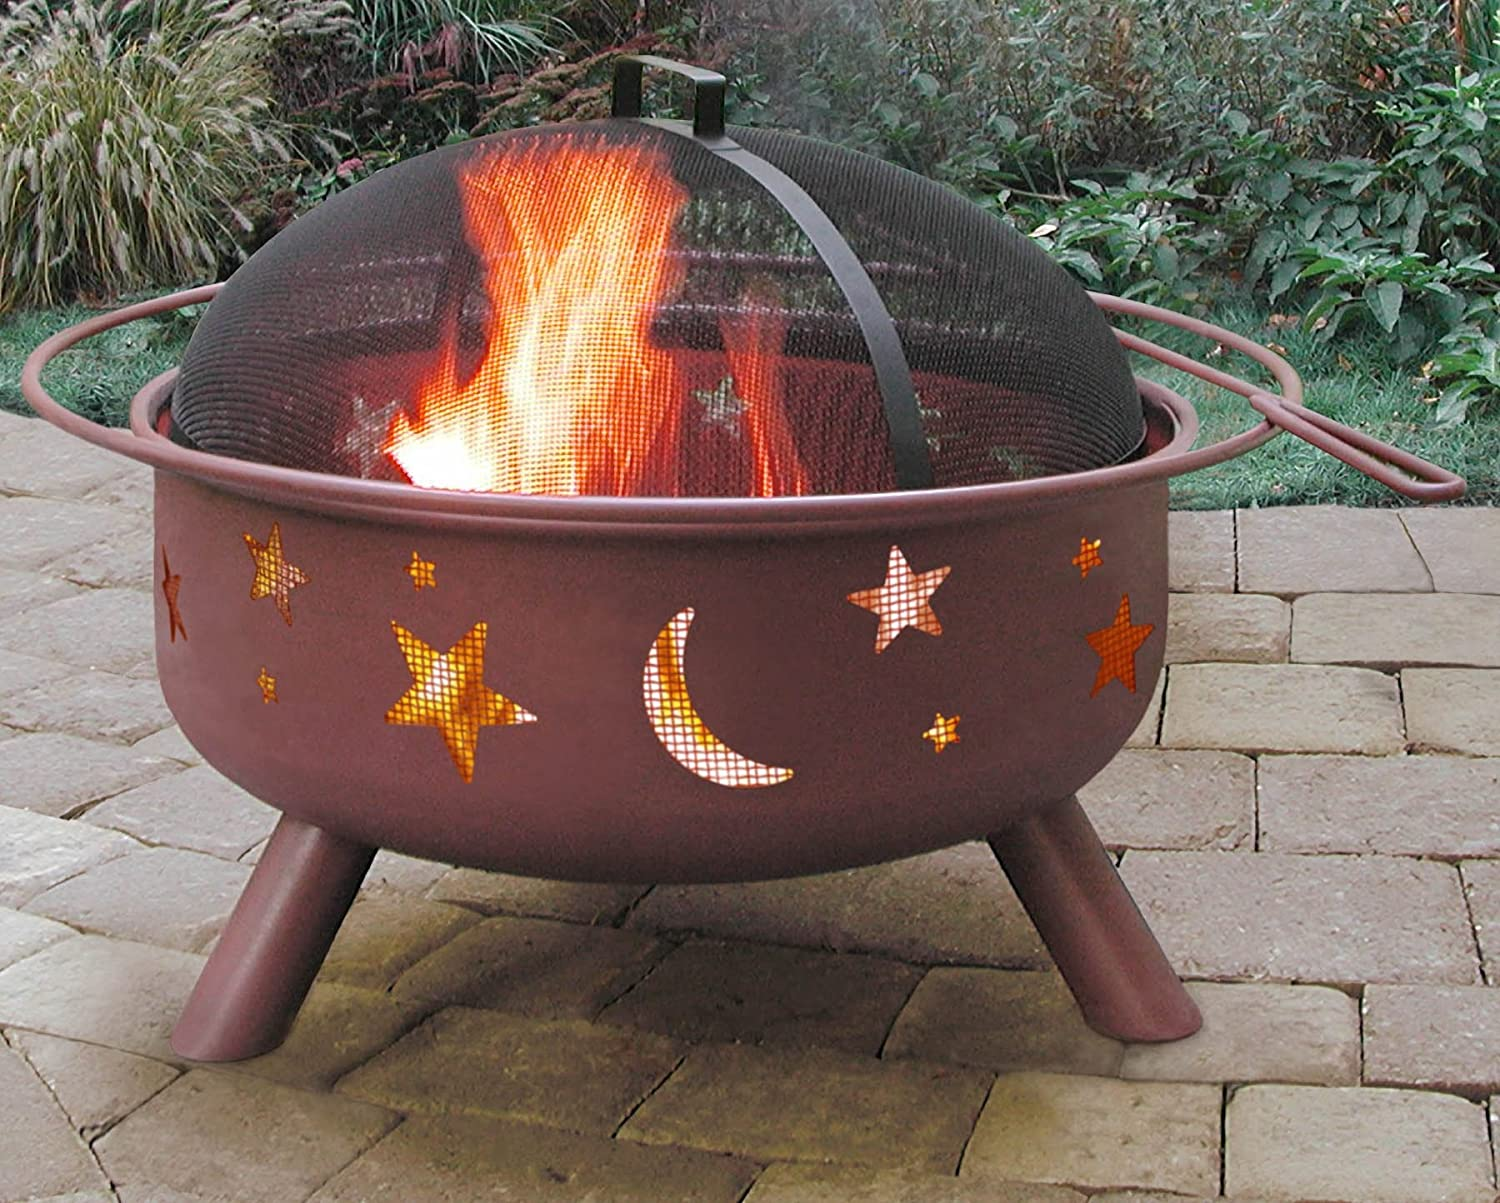 amazoncom landmann big sky stars u0026 moons fire pit georgia clay 125inches deep garden u0026 outdoor